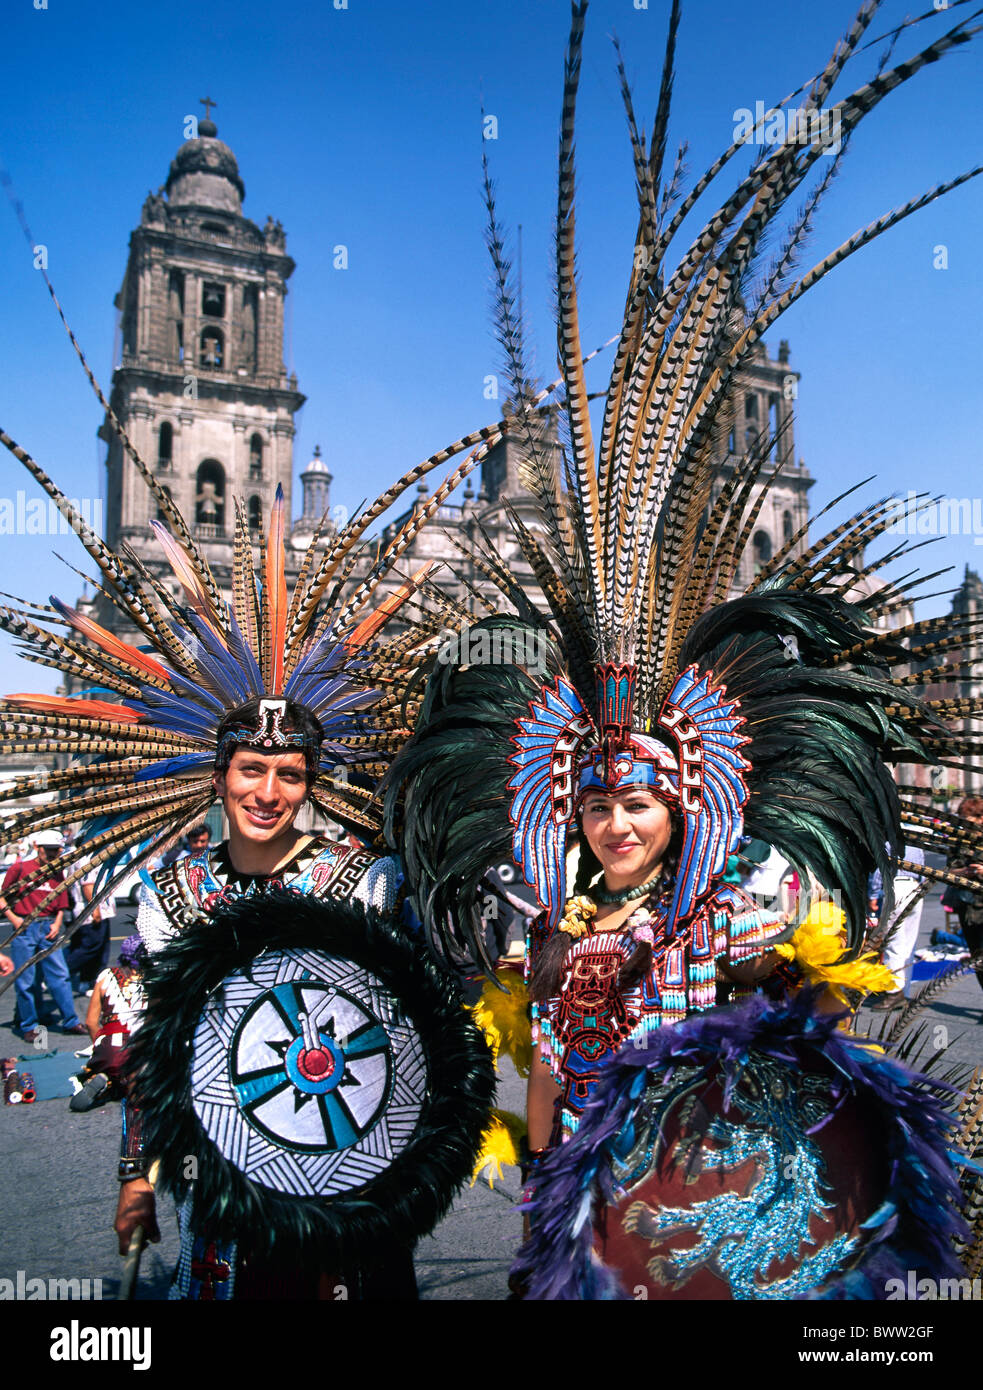 an introduction to the culture of 15th century central american indians In fact, by the time european adventurers arrived in the 15th century ad, scholars estimate that more than 50 million people were already living in the americas.